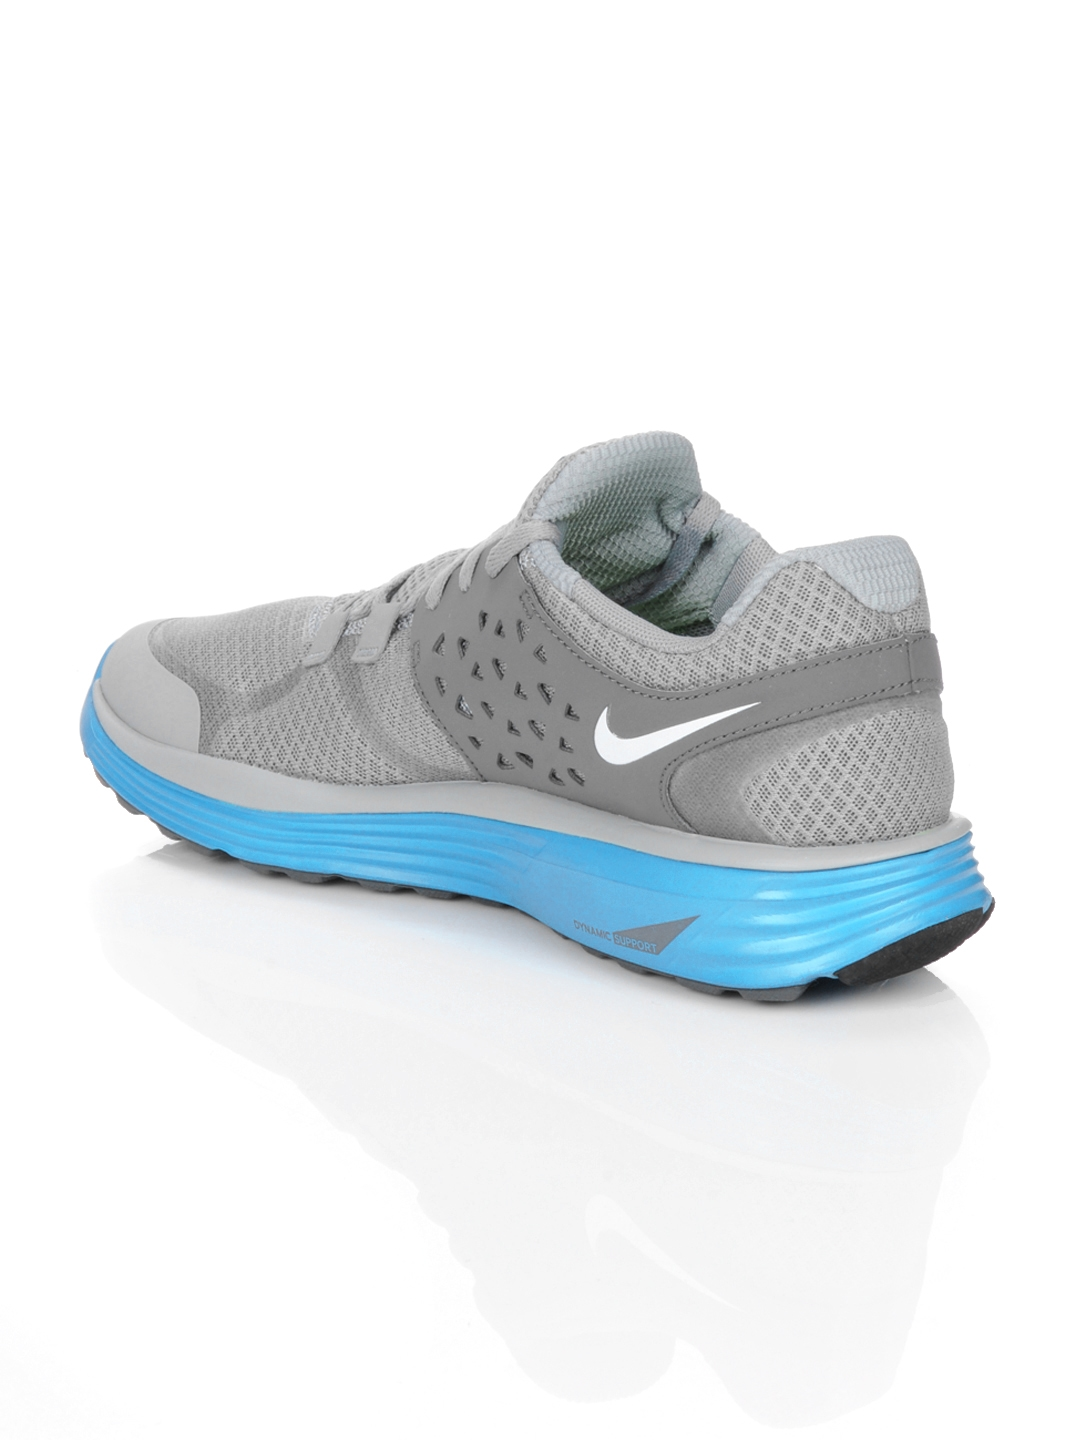 newest 4664f 42260 Buy Nike Men Lunarswift +3 Grey Sports Shoes - Sports Shoes for Men ...